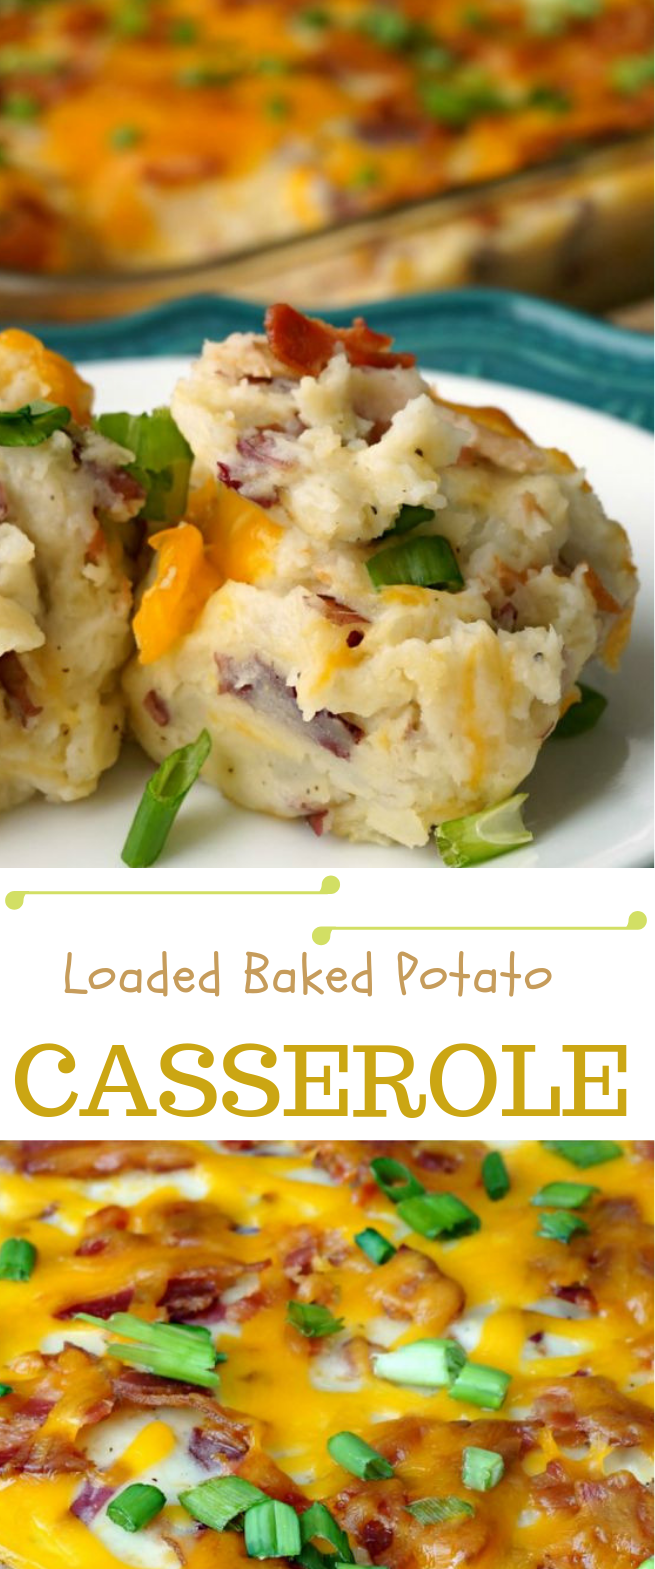 LOADED BAKED POTATO CASSEROLE RECIPE #dinner #eat